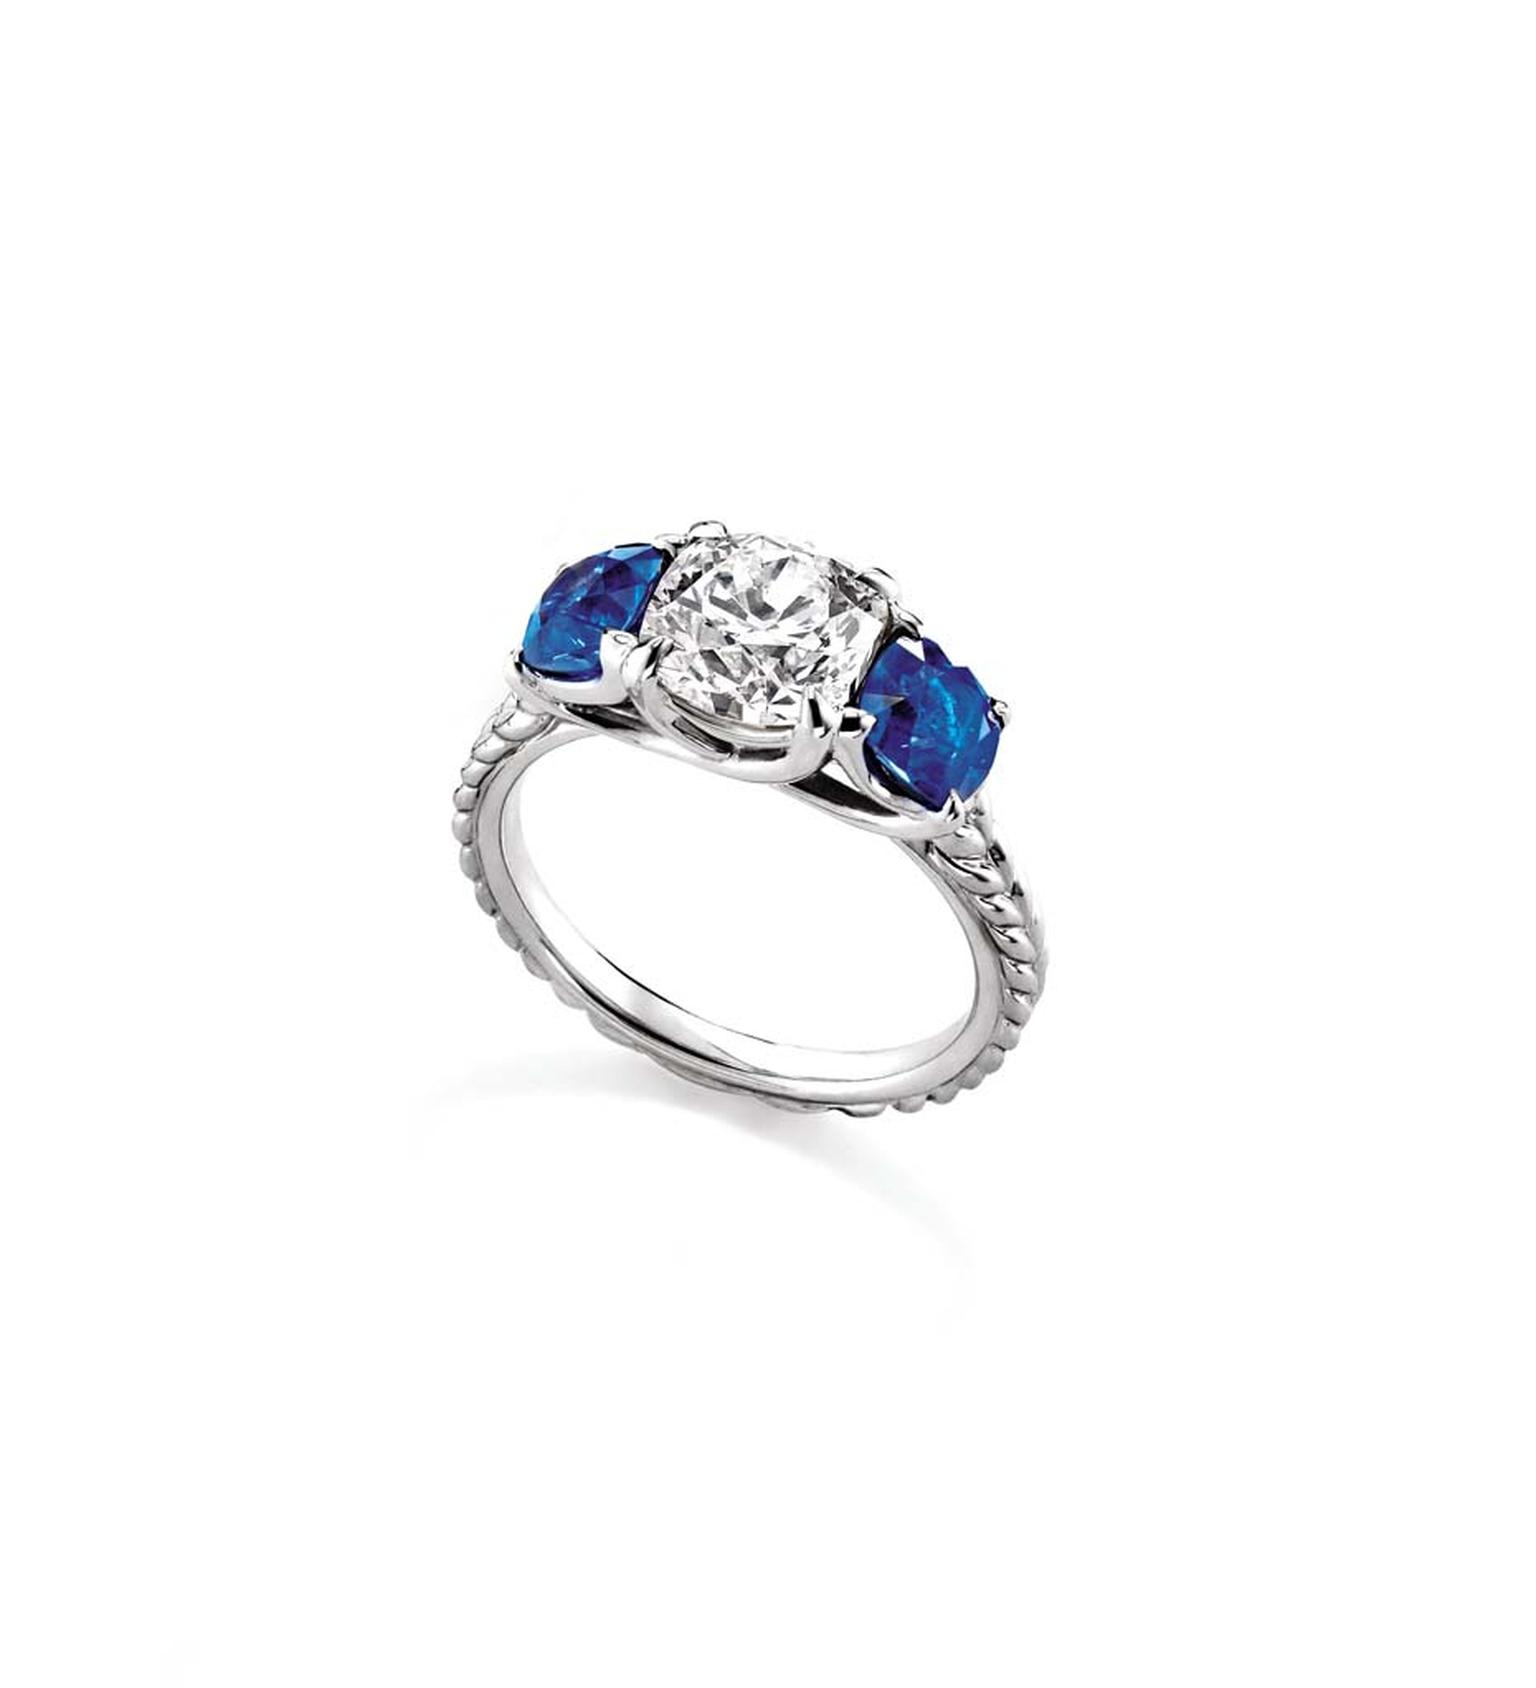 David Yurman diamond engagement ring featuring two sapphire side stones leading to the  band with the iconic Yurman Cable motif.